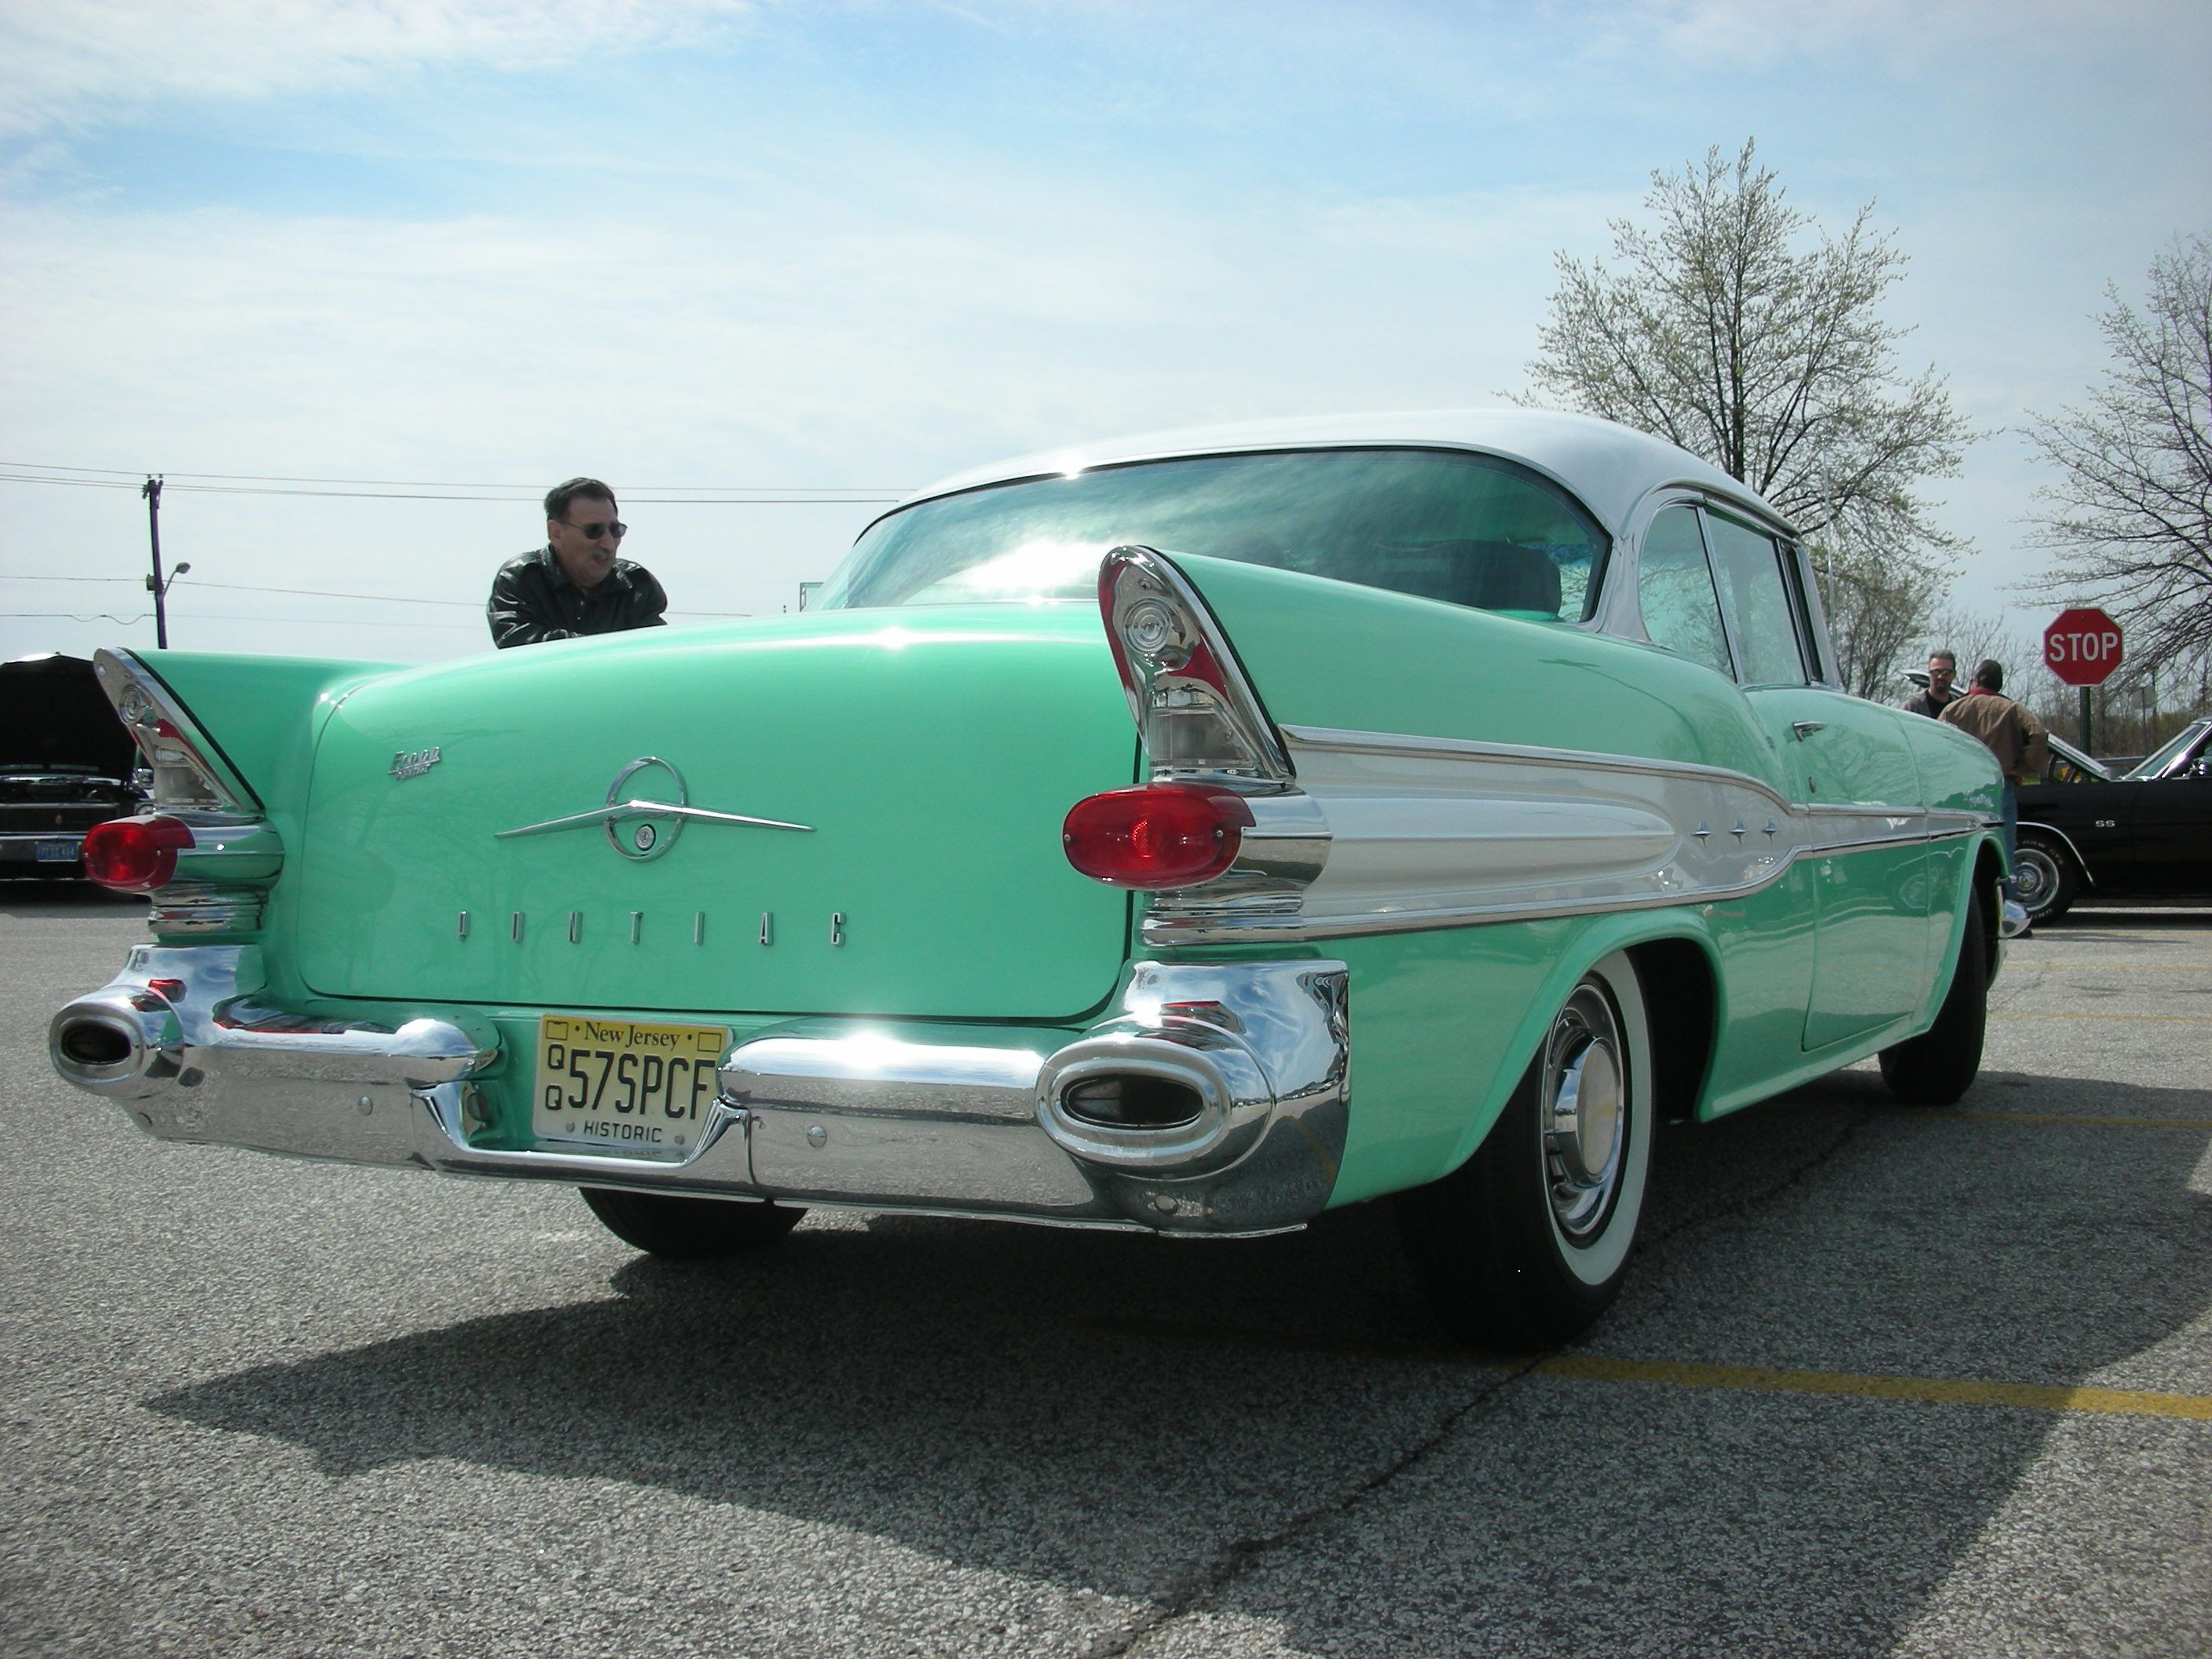 1957 Pontiac Super Chief | The good old days | Pinterest | Cars and ...